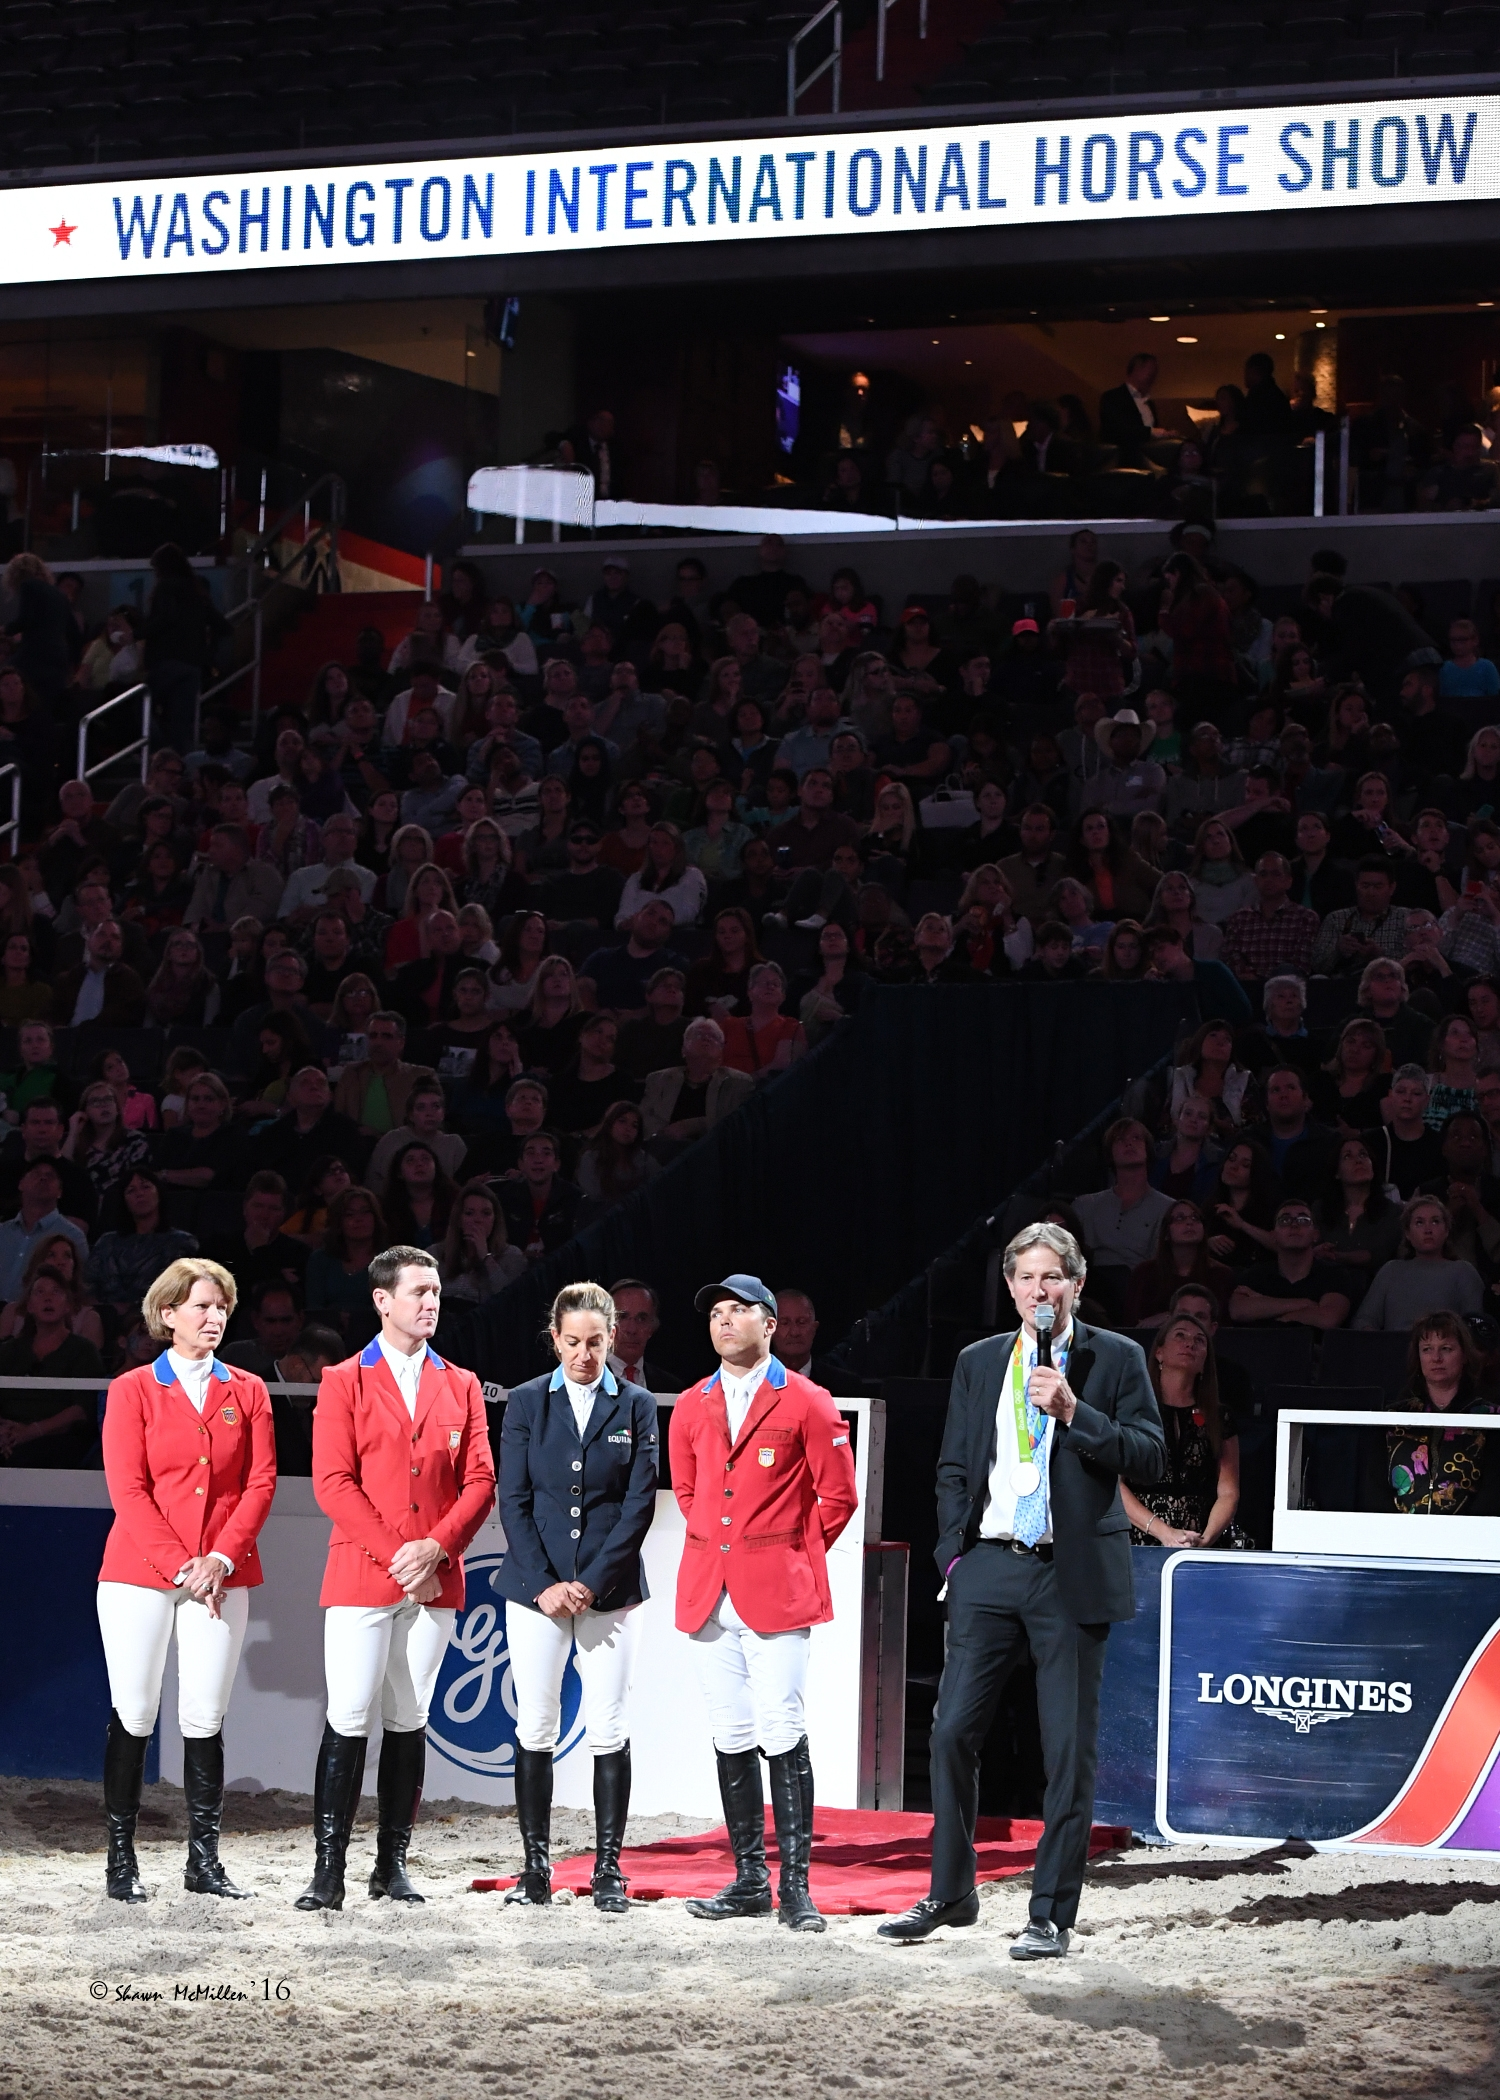 The U.S. Show Jumping Olympic Silver Medalists were honored in a special ceremony on Saturday night, including Beezie Madden, McLain Ward, Laura Kraut, Kent Farrington, and Chef d'Equipe Robert Ridland. <br><b>Photo by <a href='http://www.shawnmcmillen.com/' target='_blank'>Shawn McMillen Photography</a></b>